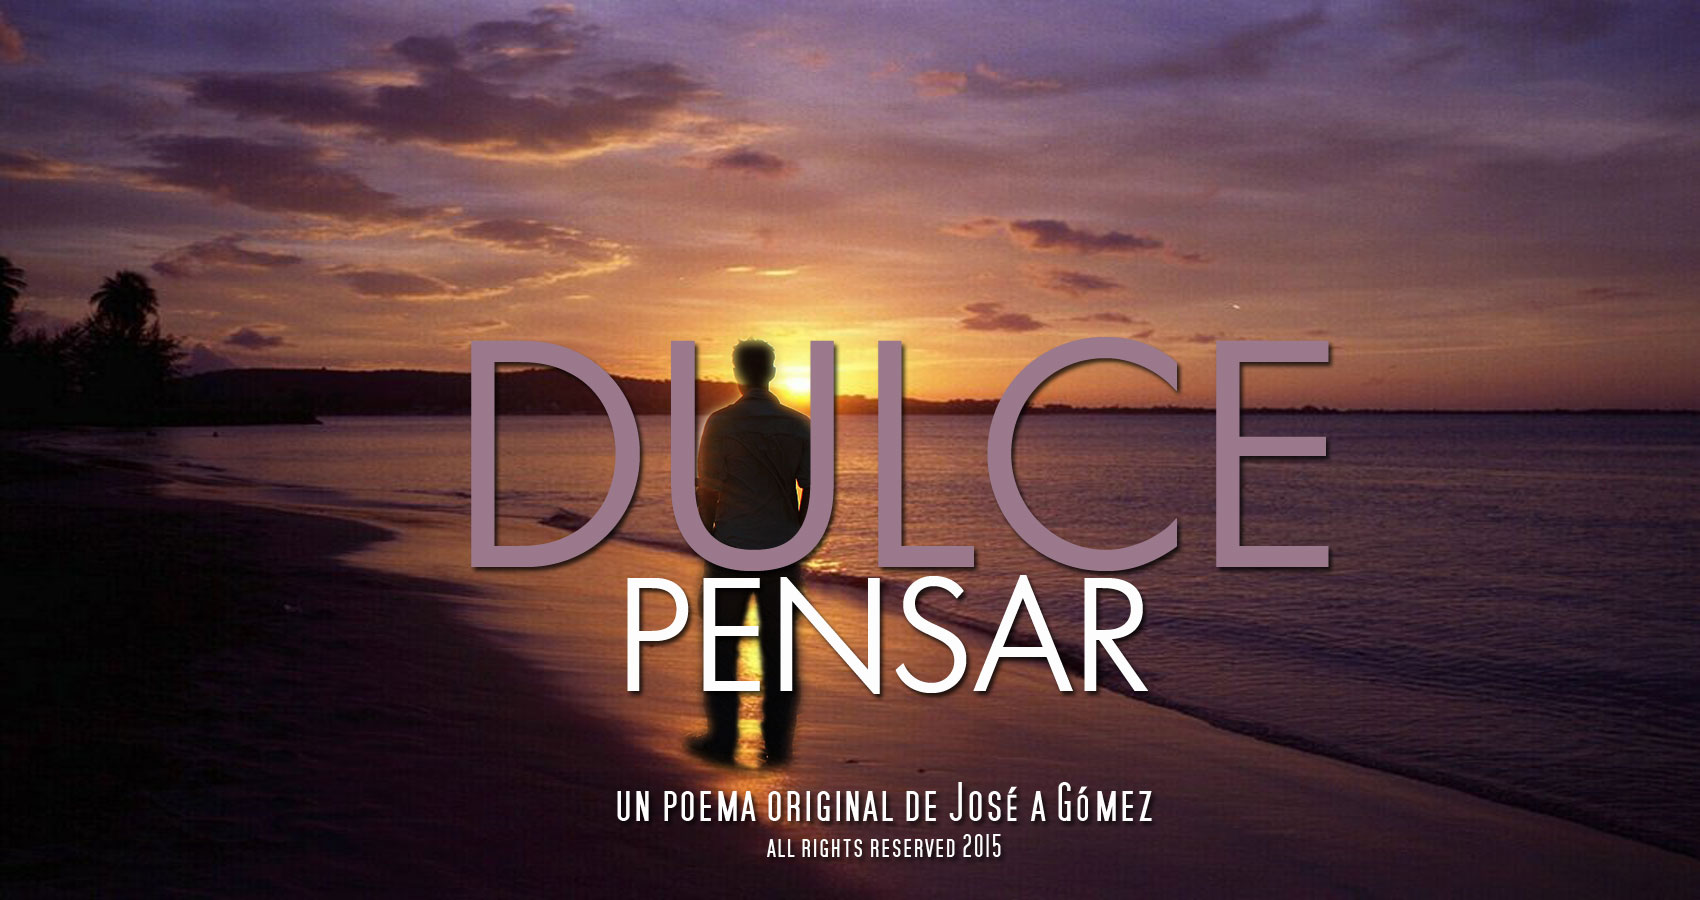 Dulce Pensar de Jose a Gomez at Spillwords.com